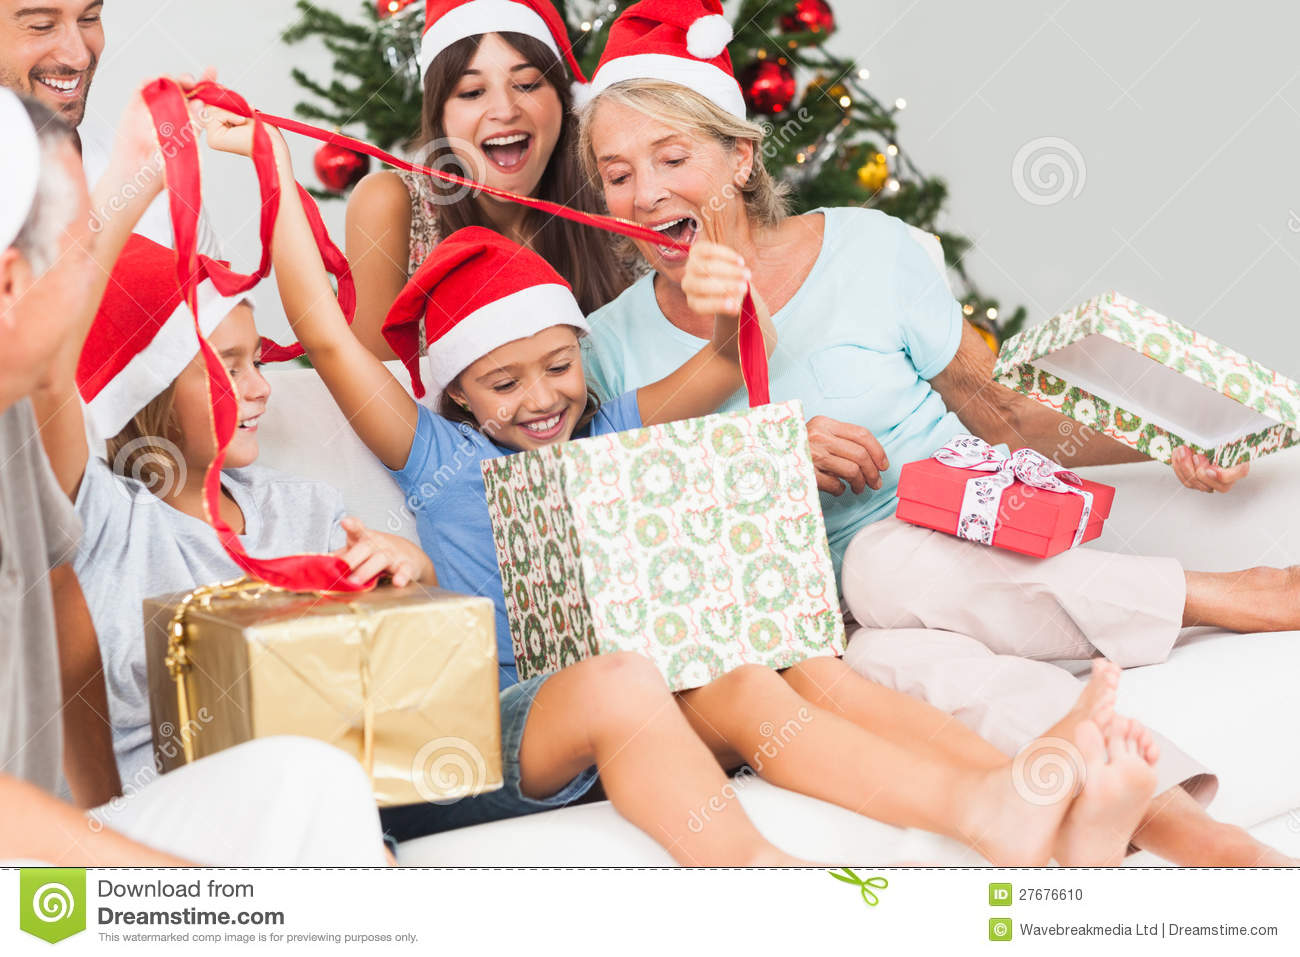 Family Christmas Gifts.Happy Family At Christmas Opening Gifts Together Stock Photo